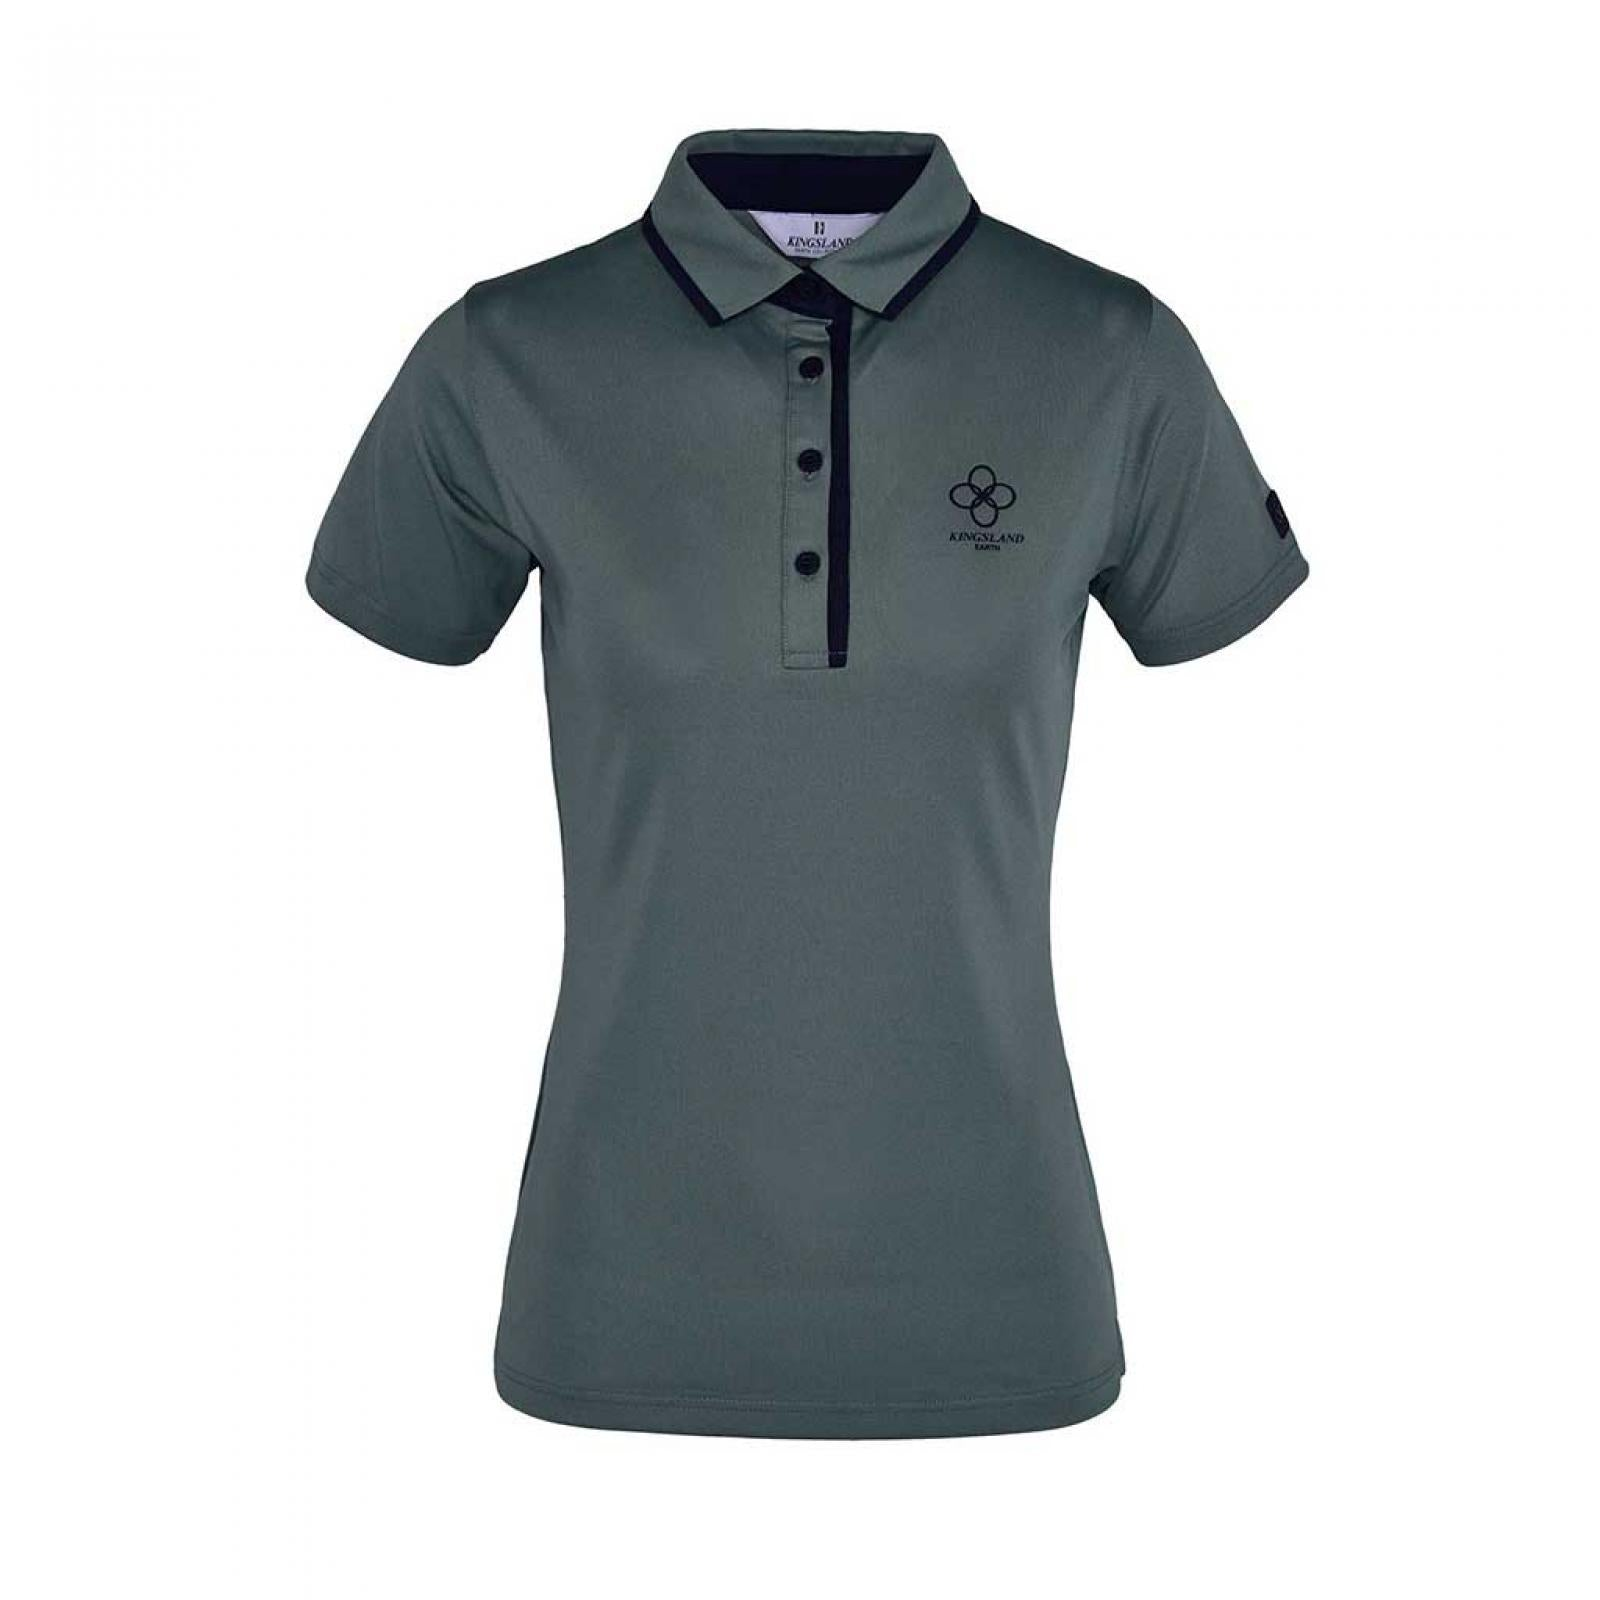 KLstar Ladies Recycled Pique Shirt